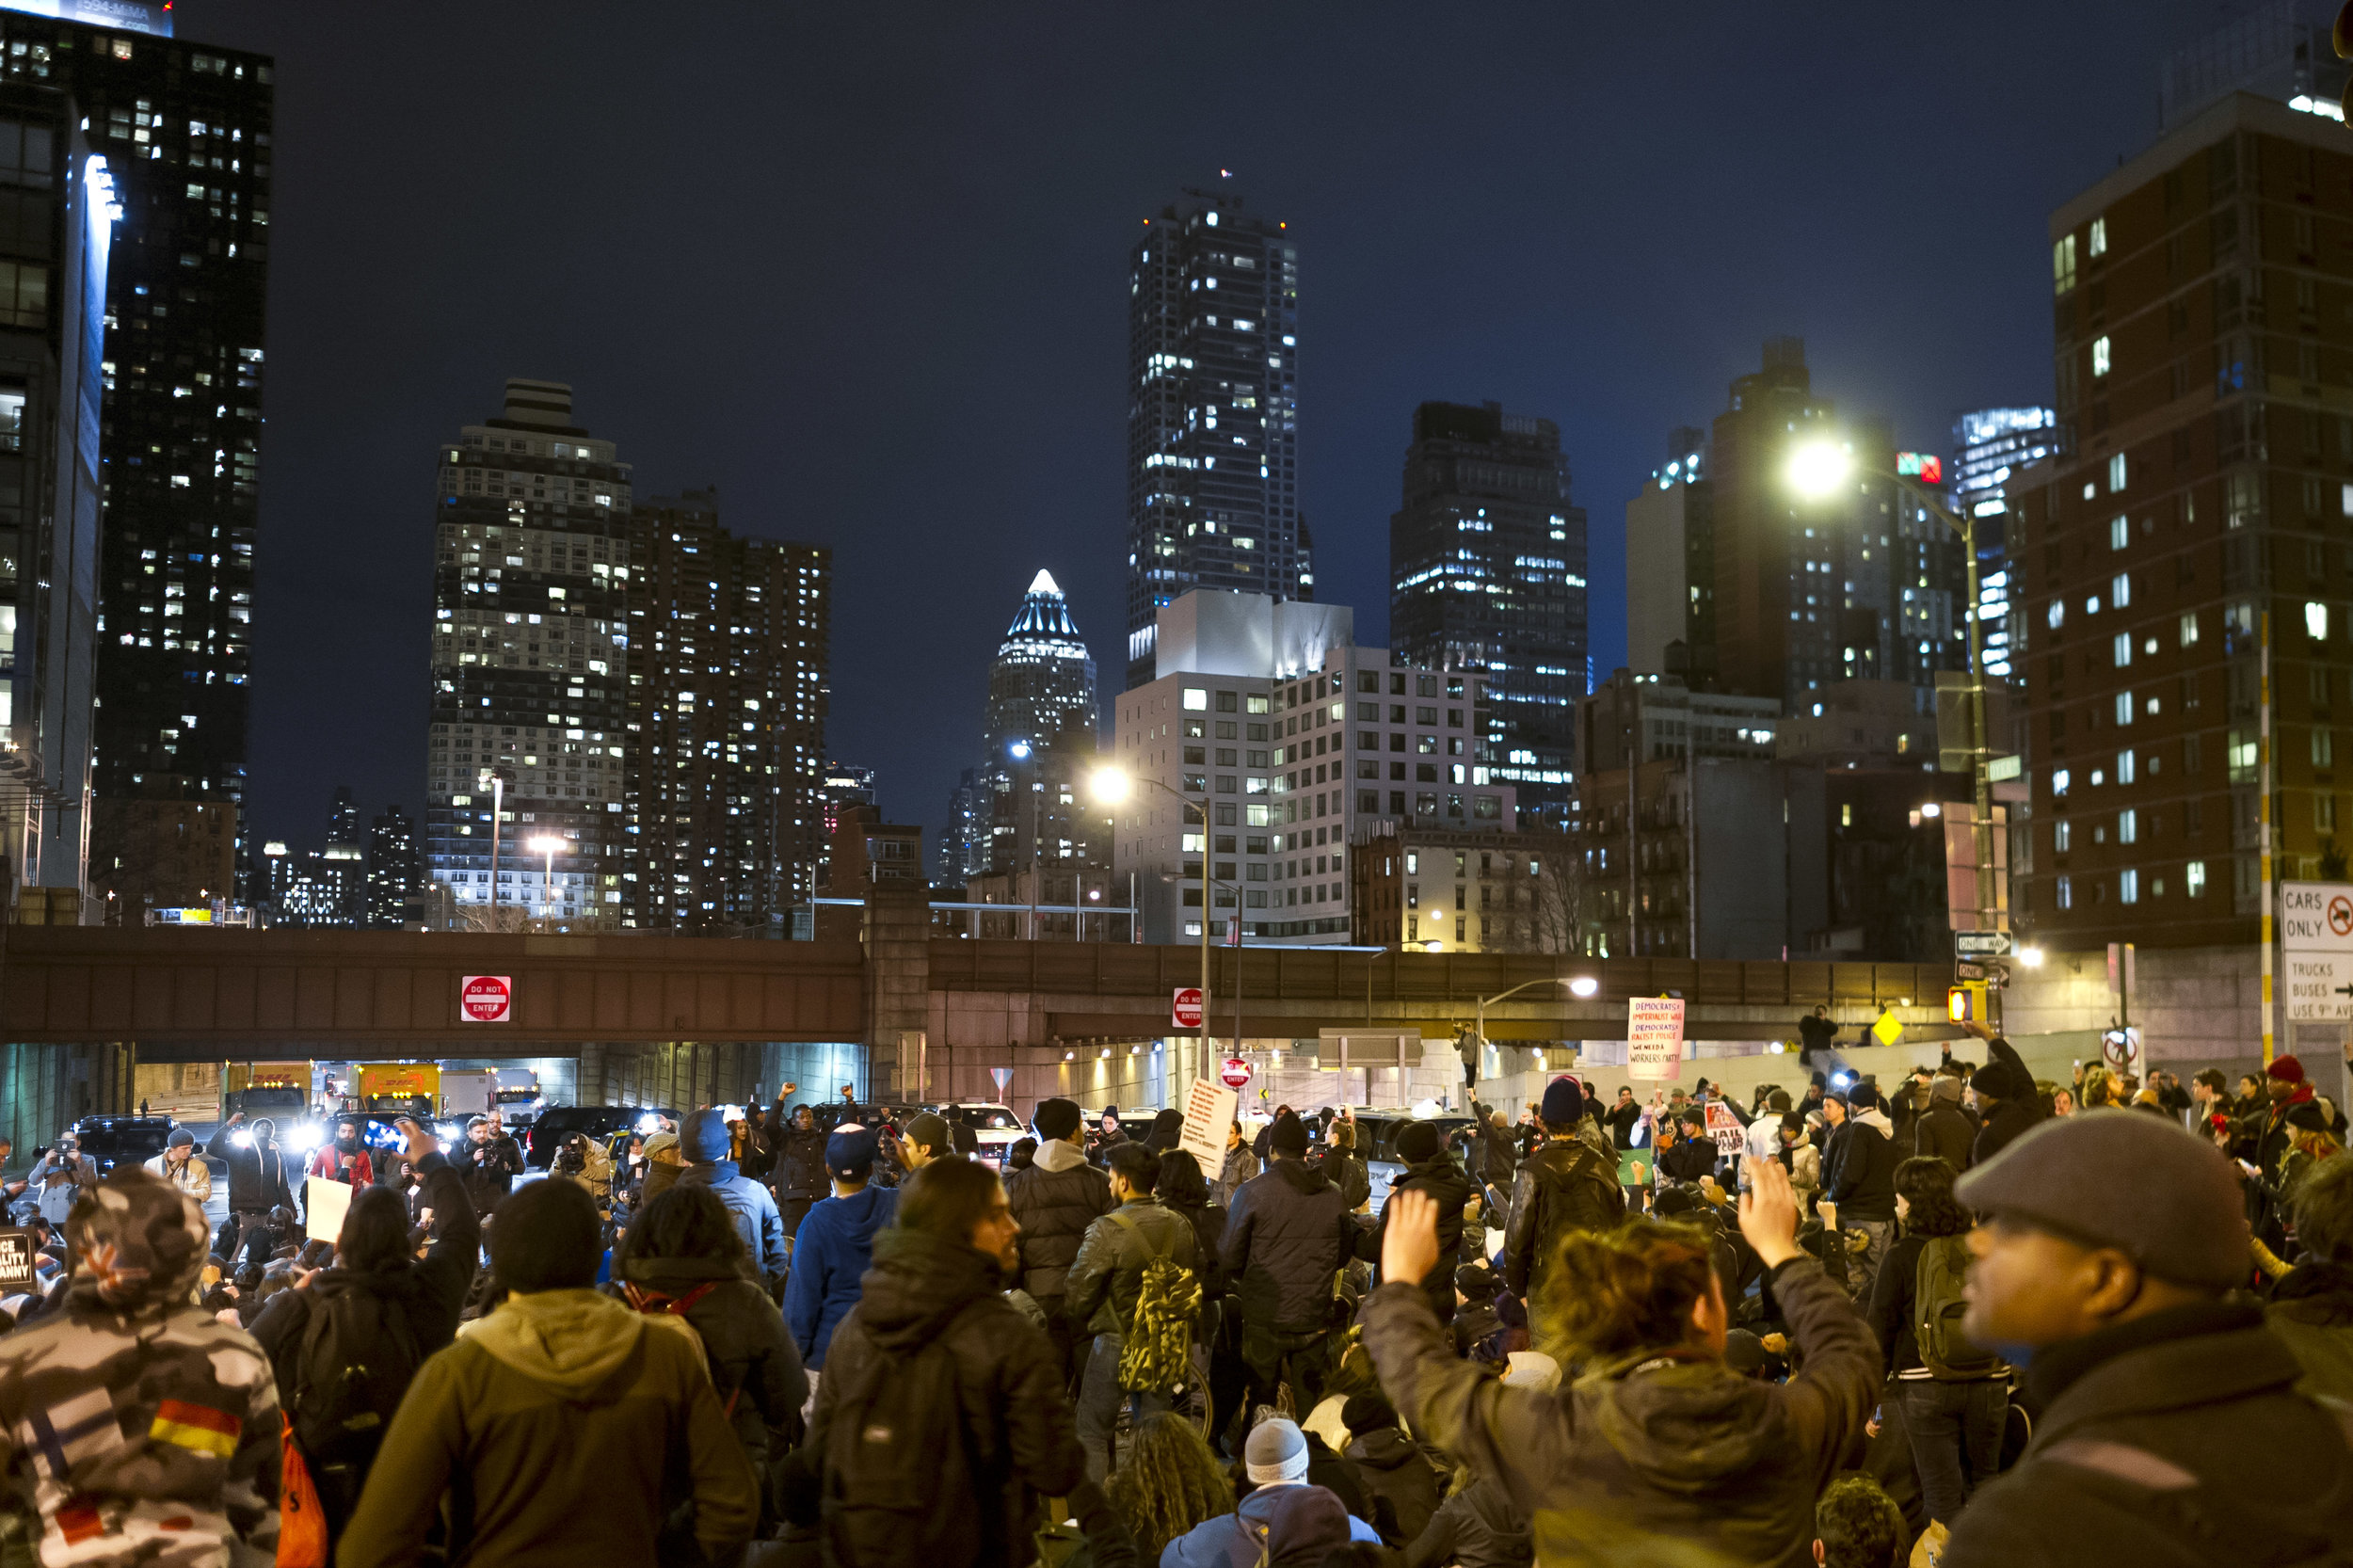 Demonstrators bring traffic at the Lincoln Tunnel entrance to a standstill on December 4th, 2014. Weeks of protest followed a Staten Island grand jury's decision on December 3rd 2014 not to indict Officer Daniel Pantaleo in the killing of Eric Garner.